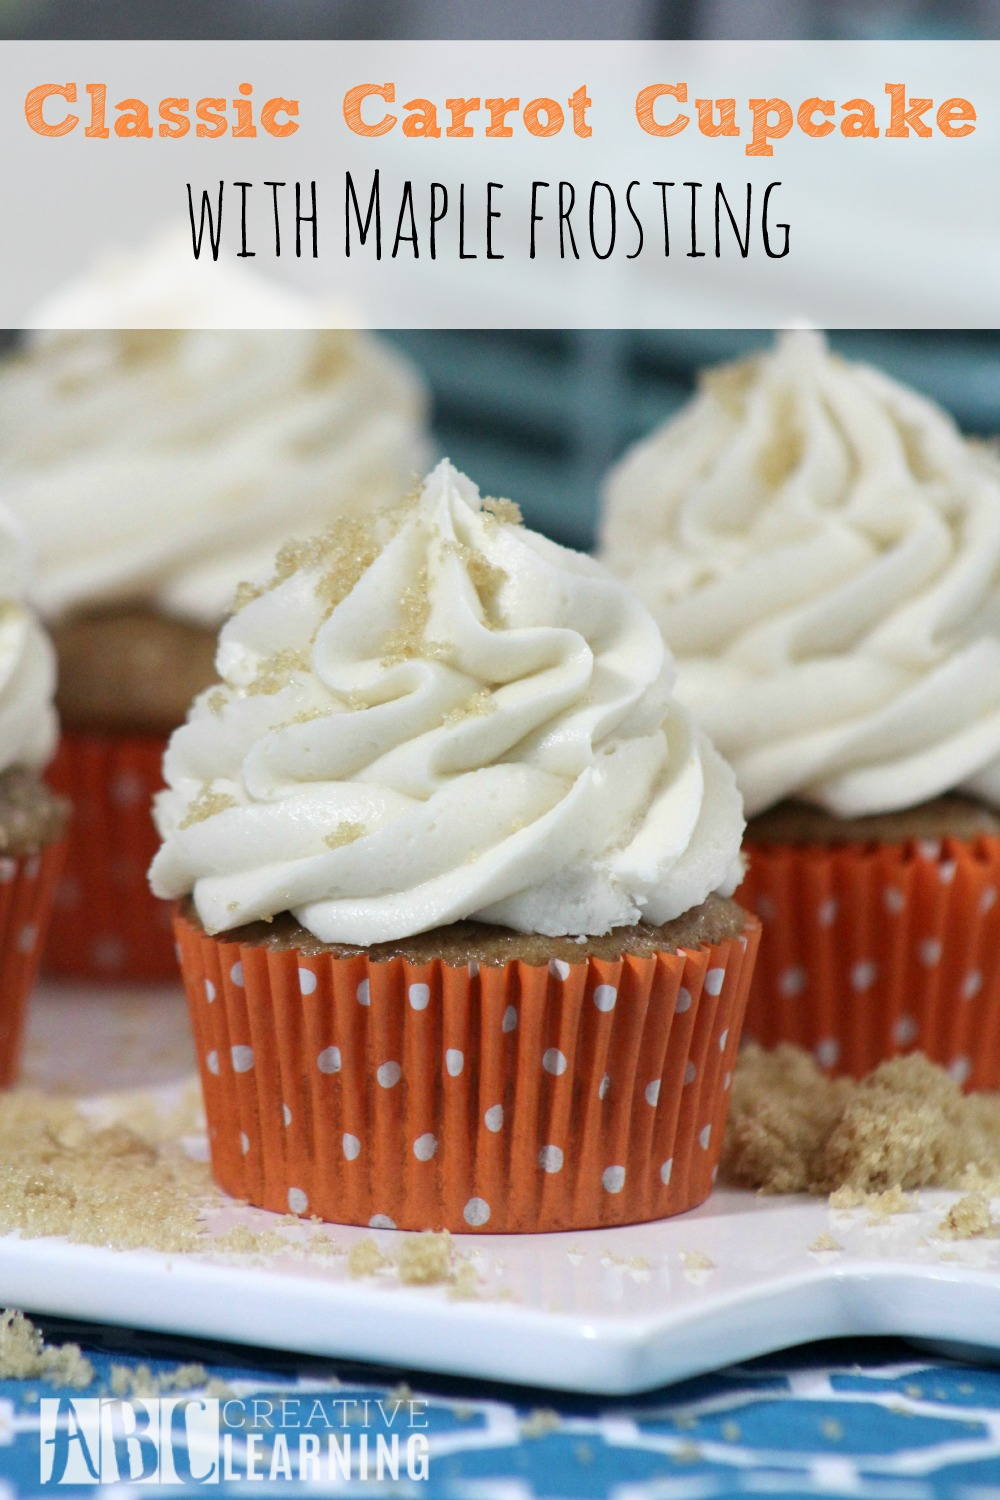 Classic Carrot Cupcake with Maple Frosting Recipe